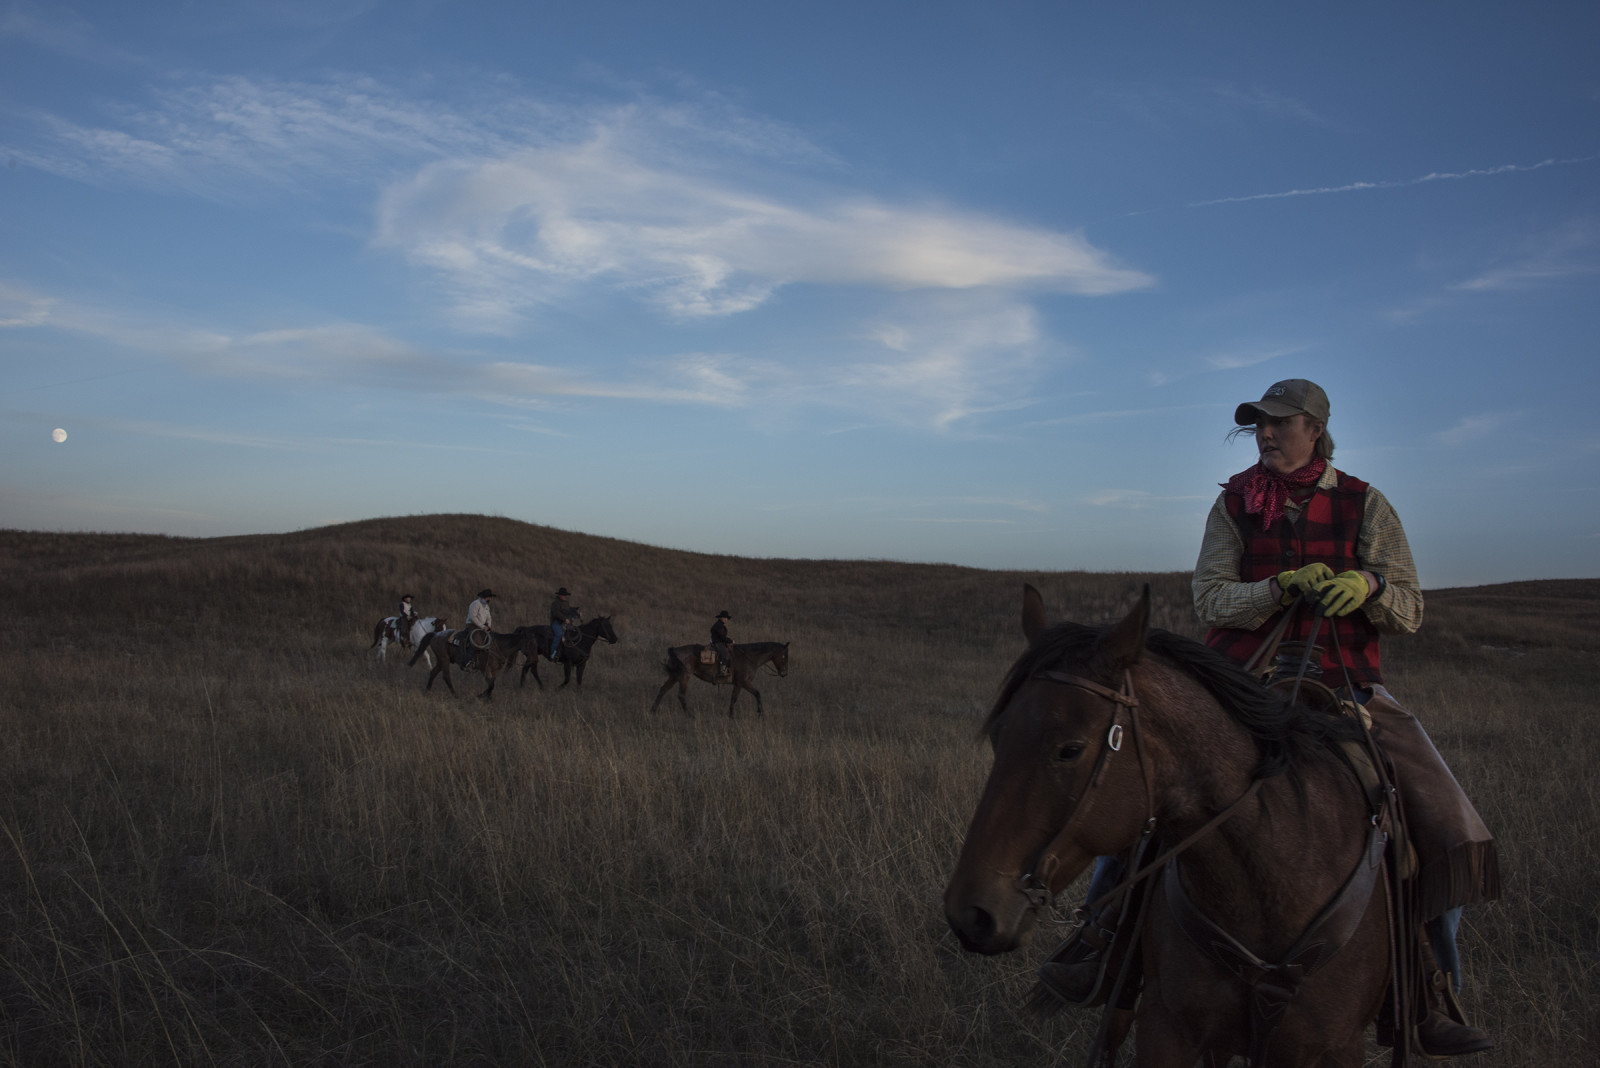 Guided by moonlight, Sarah and her family head back to their homes after a long day moving cattle. (Mariah Lundgren)